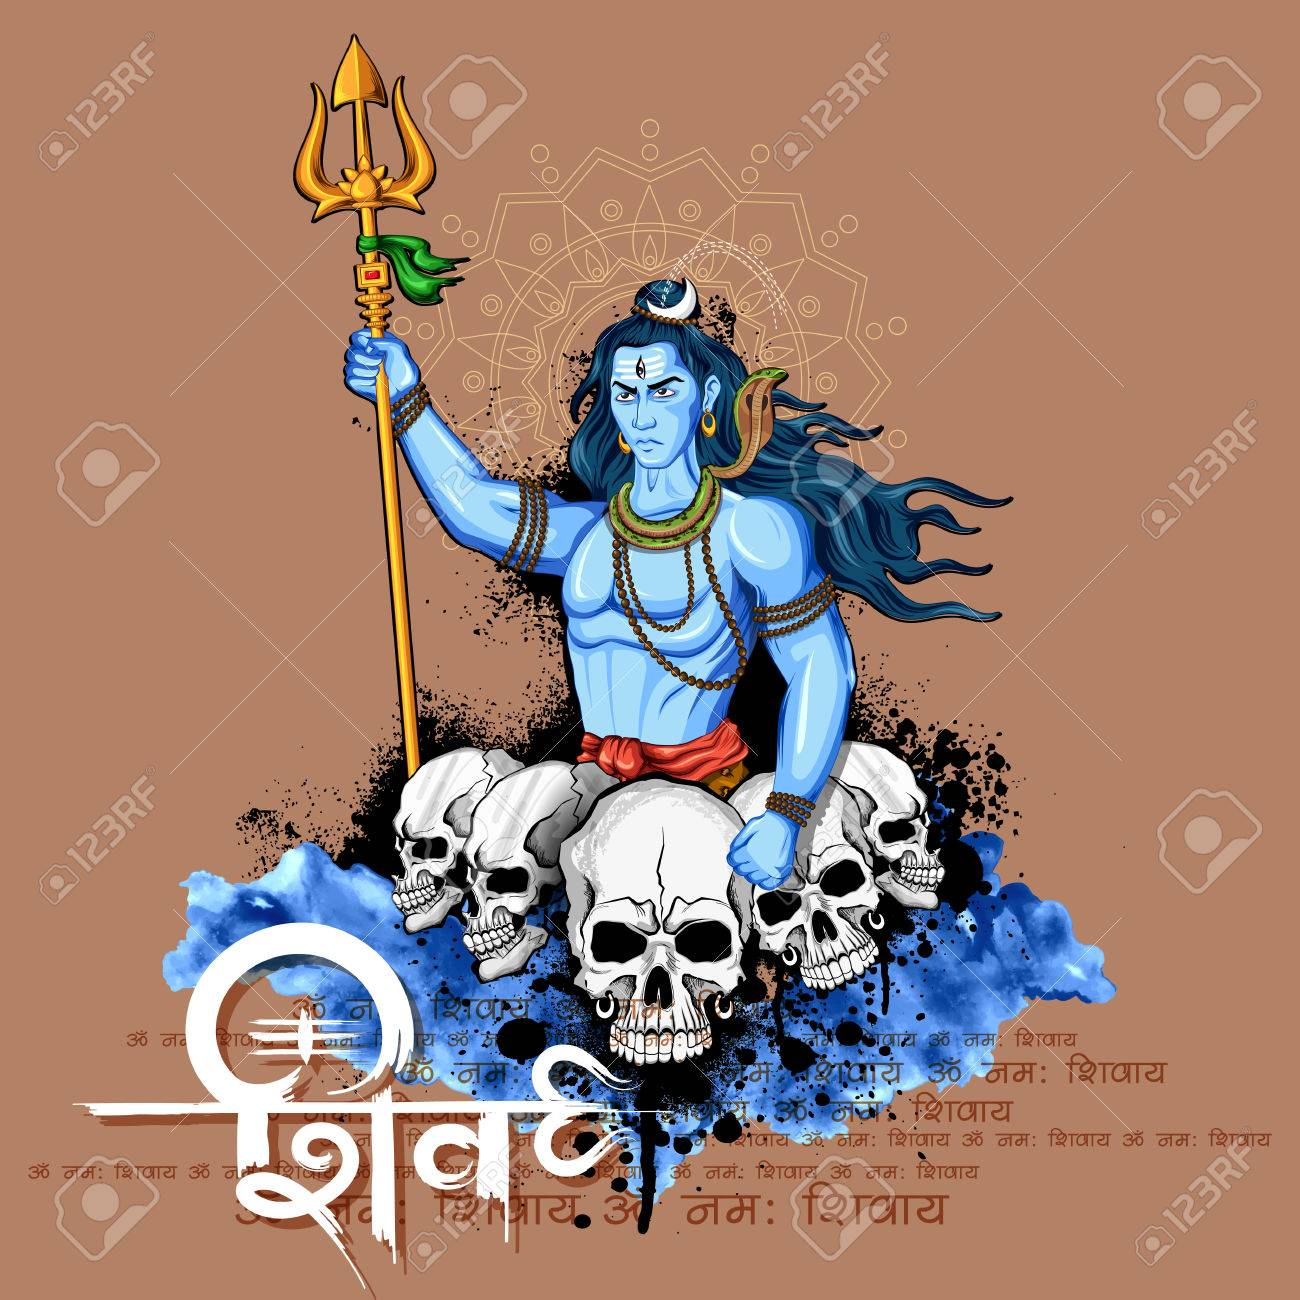 Lord shiva indian god of hindu royalty free cliparts vectors and lord shiva indian god of hindu stock vector 72446350 biocorpaavc Image collections